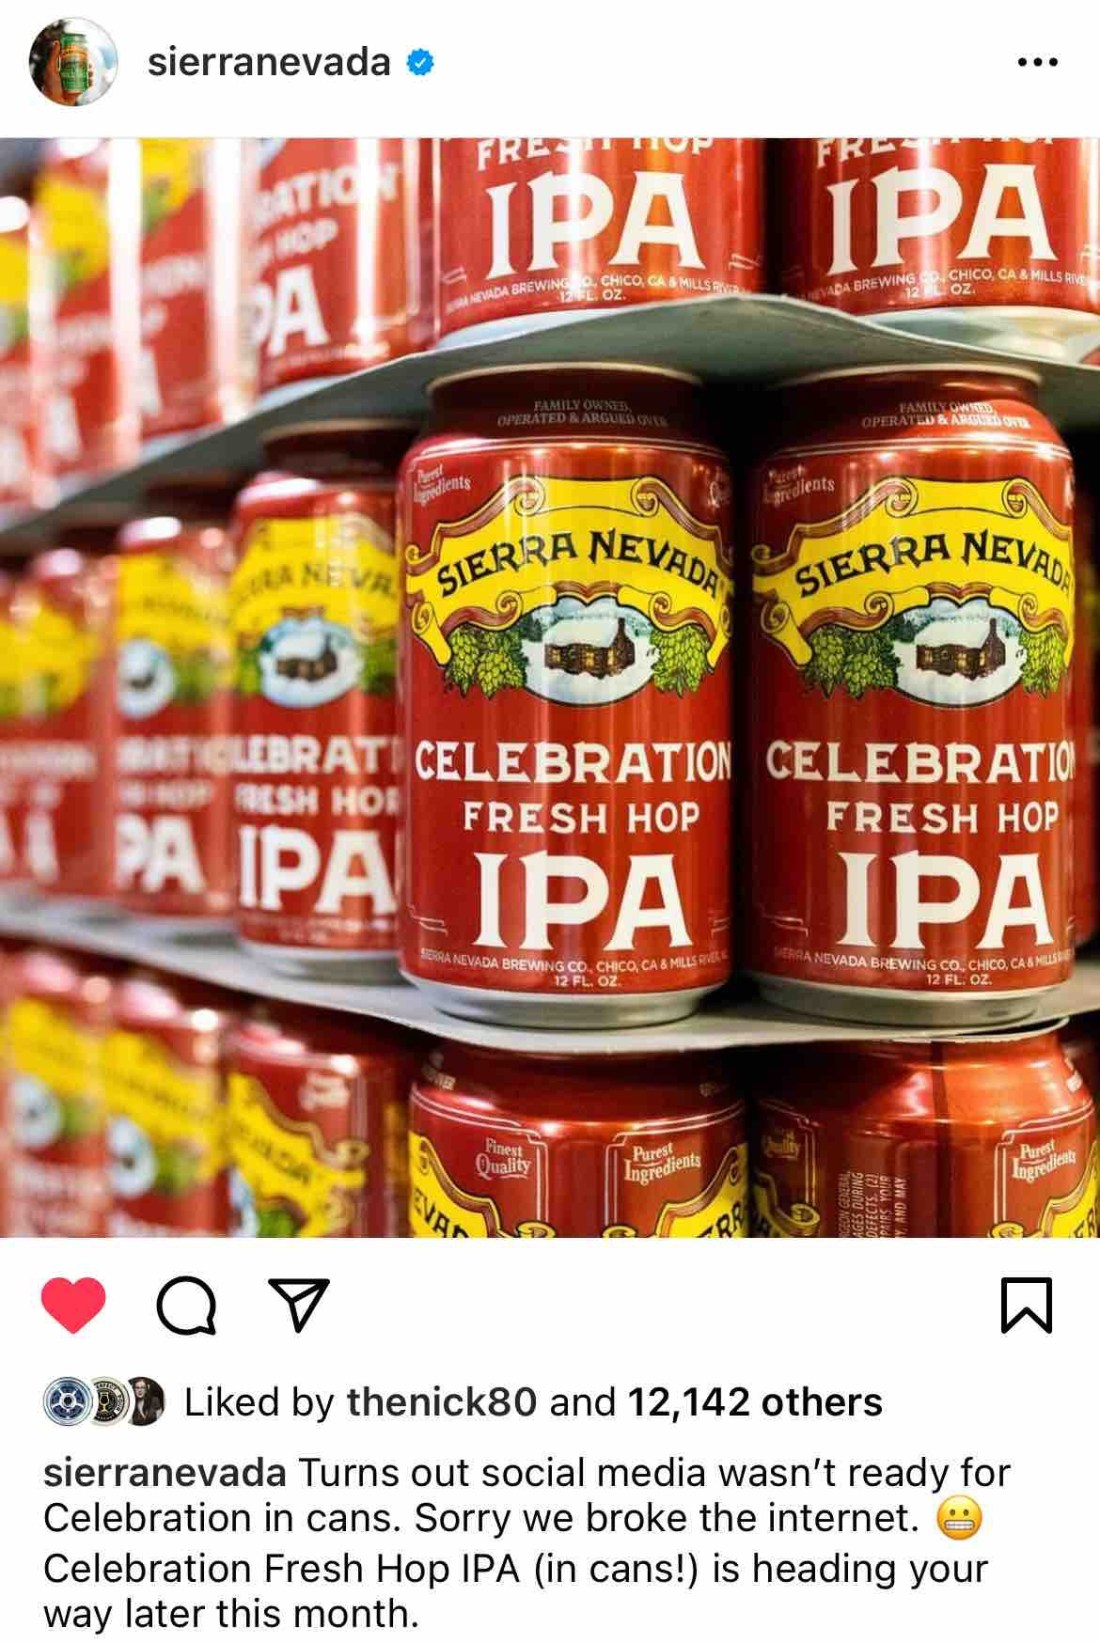 Celebration Ale in cans